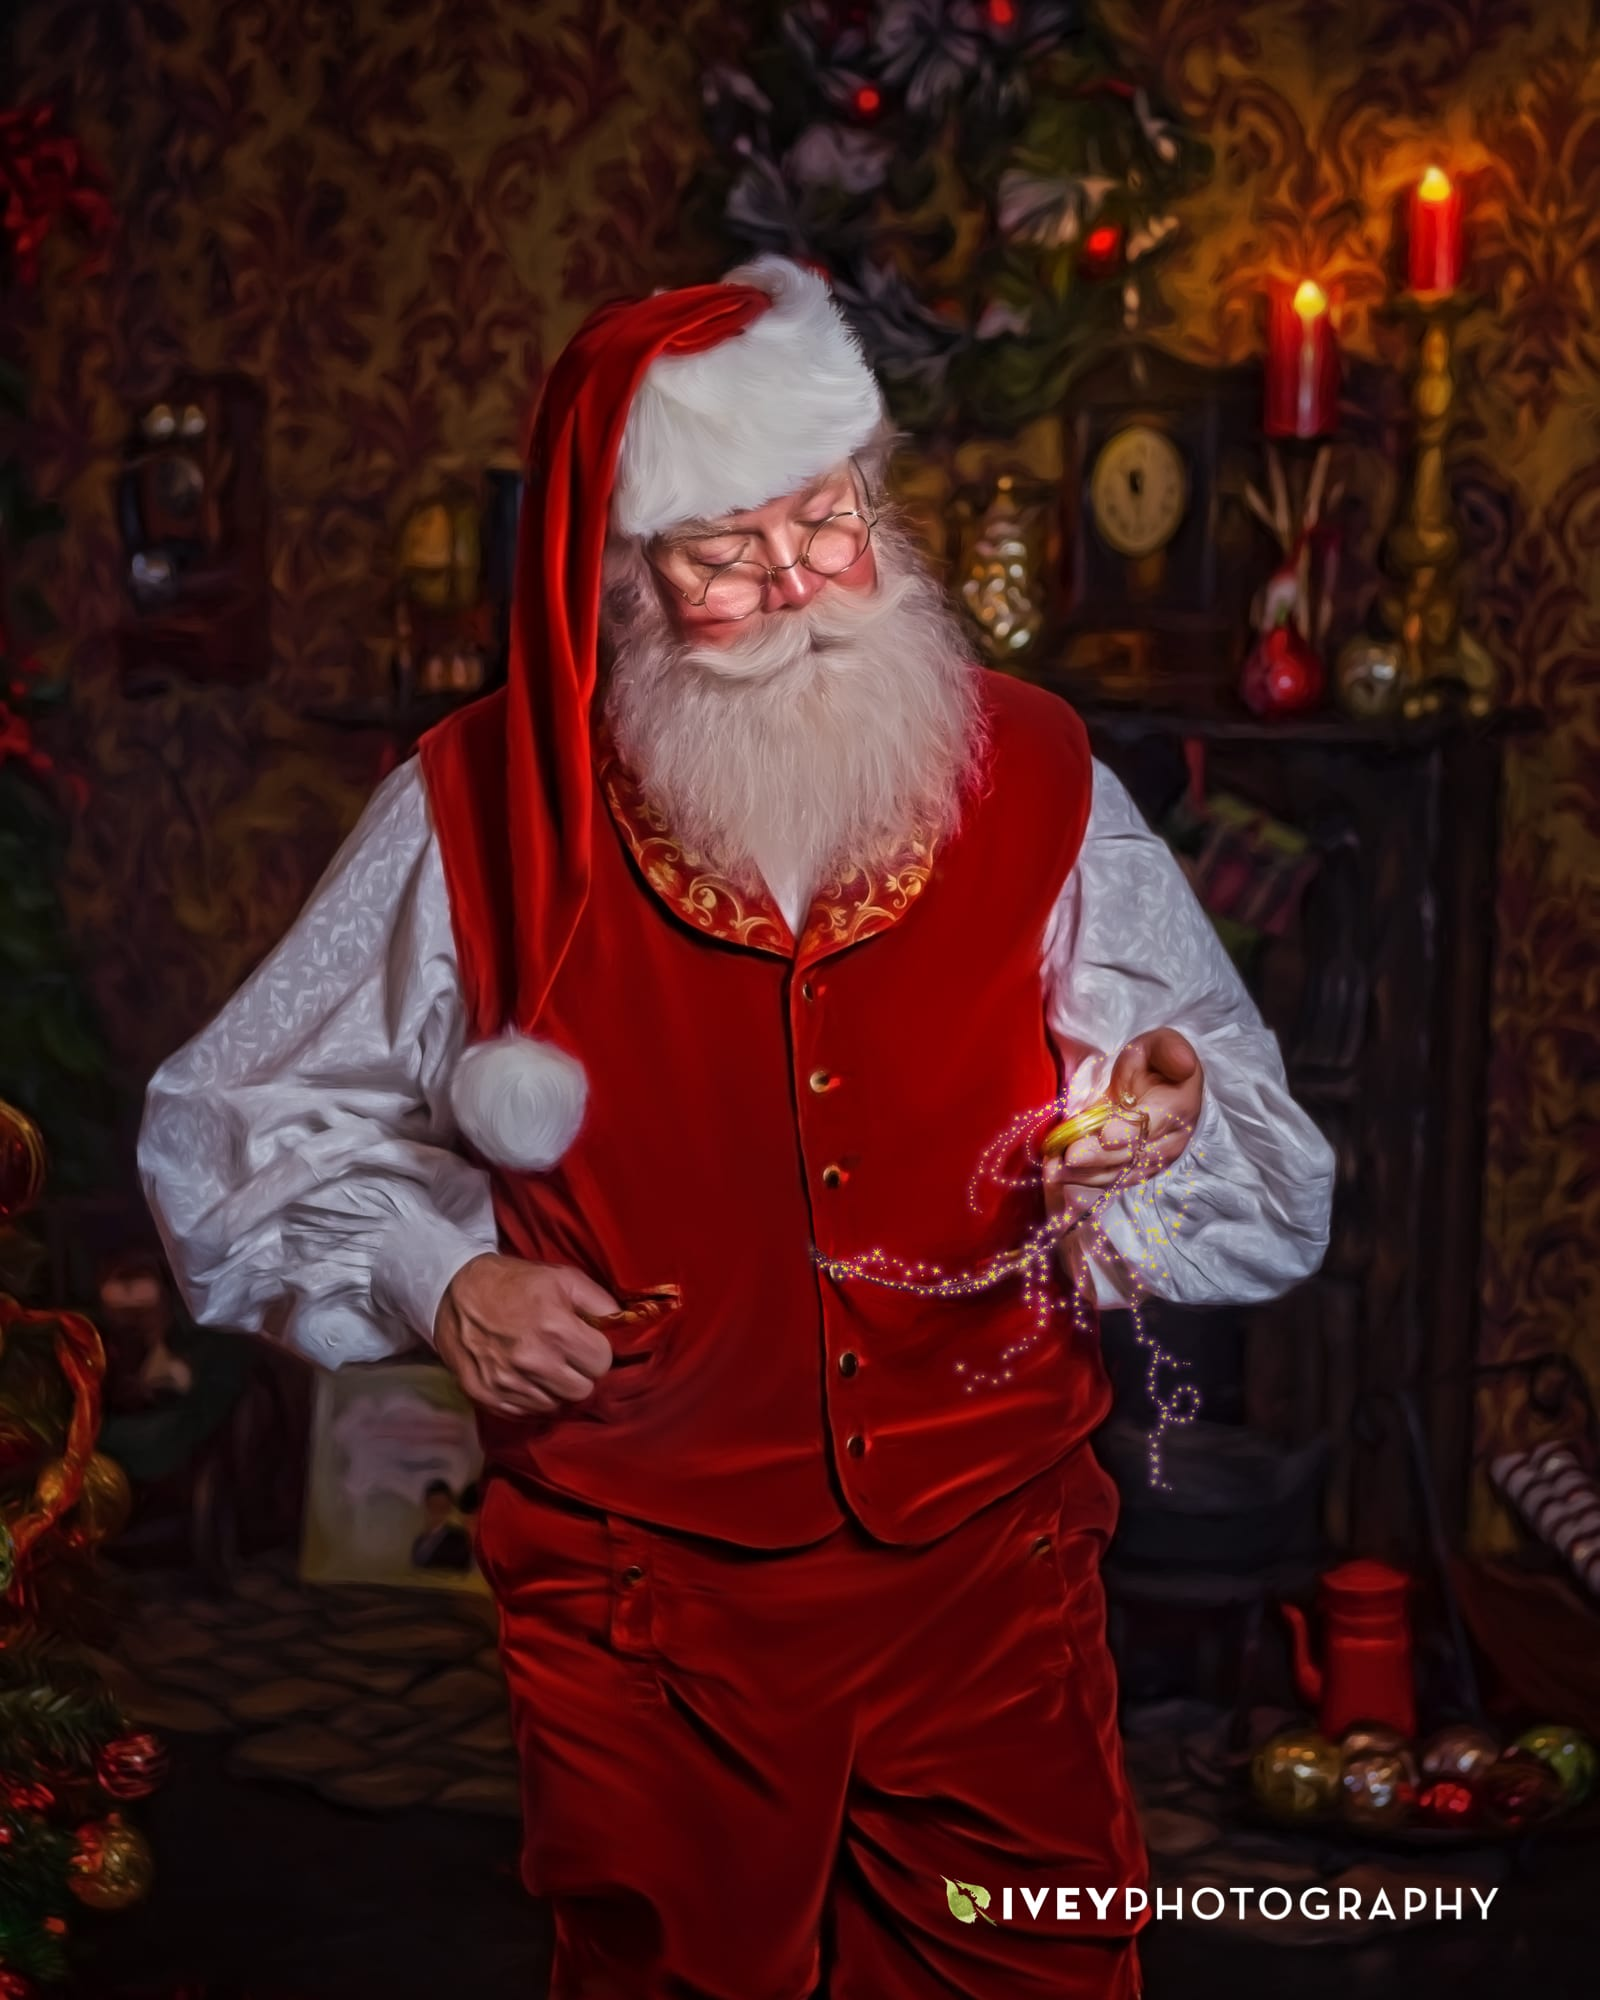 Santa Chuck Lee in The Storybook Santa Experience at Ivey Photography